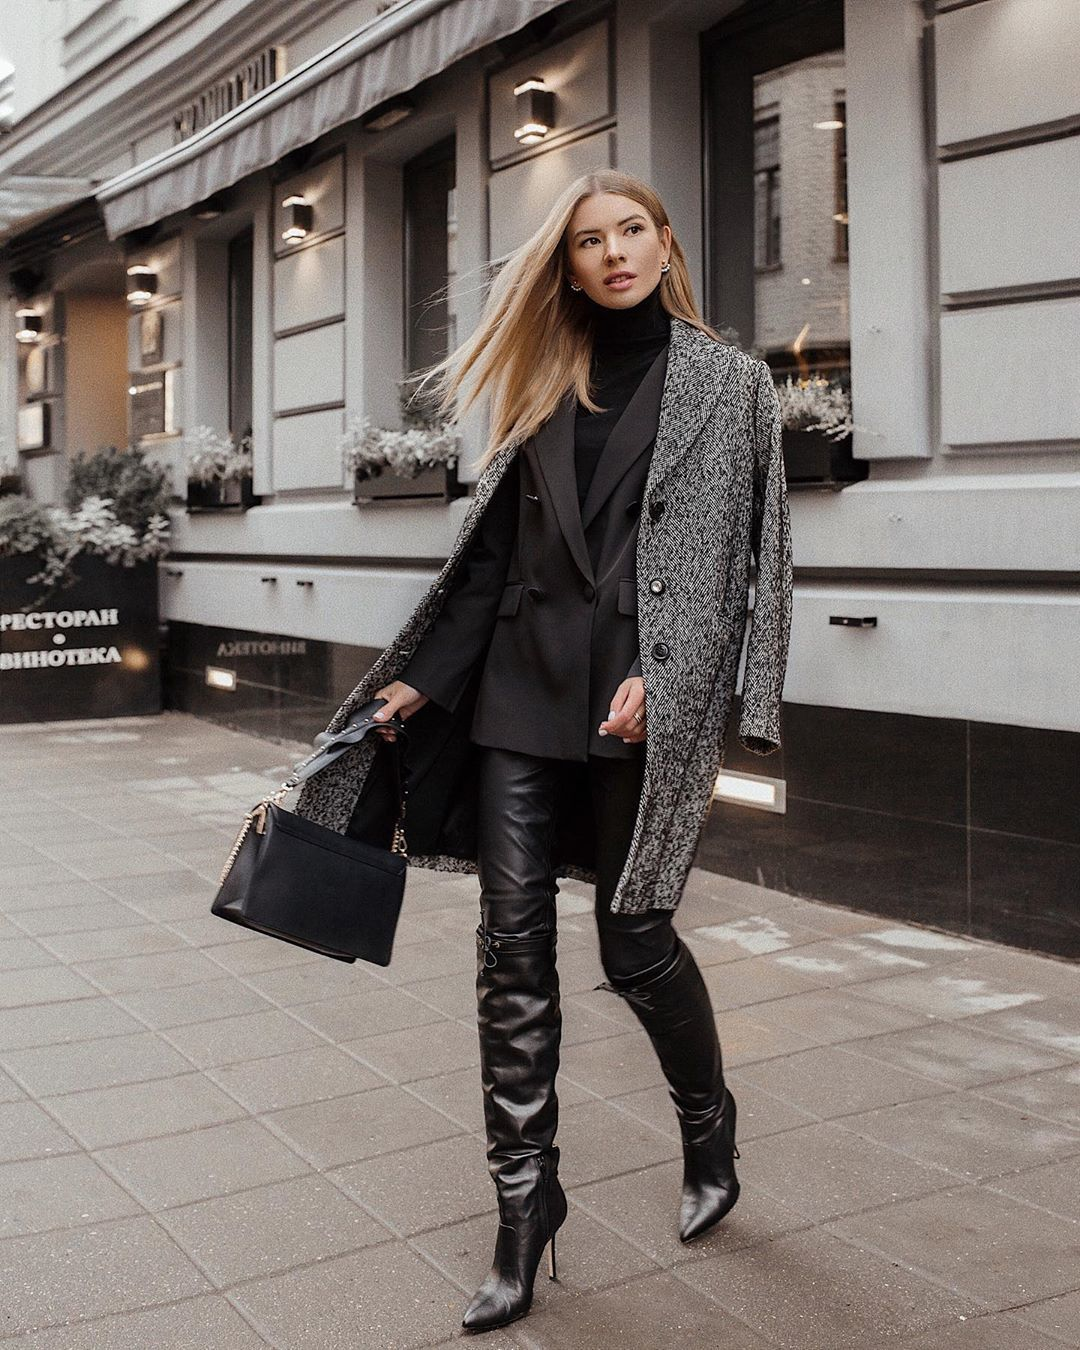 coat long coat black boots over the knee boots black leather pants black blazer double breasted black turtleneck top black bag